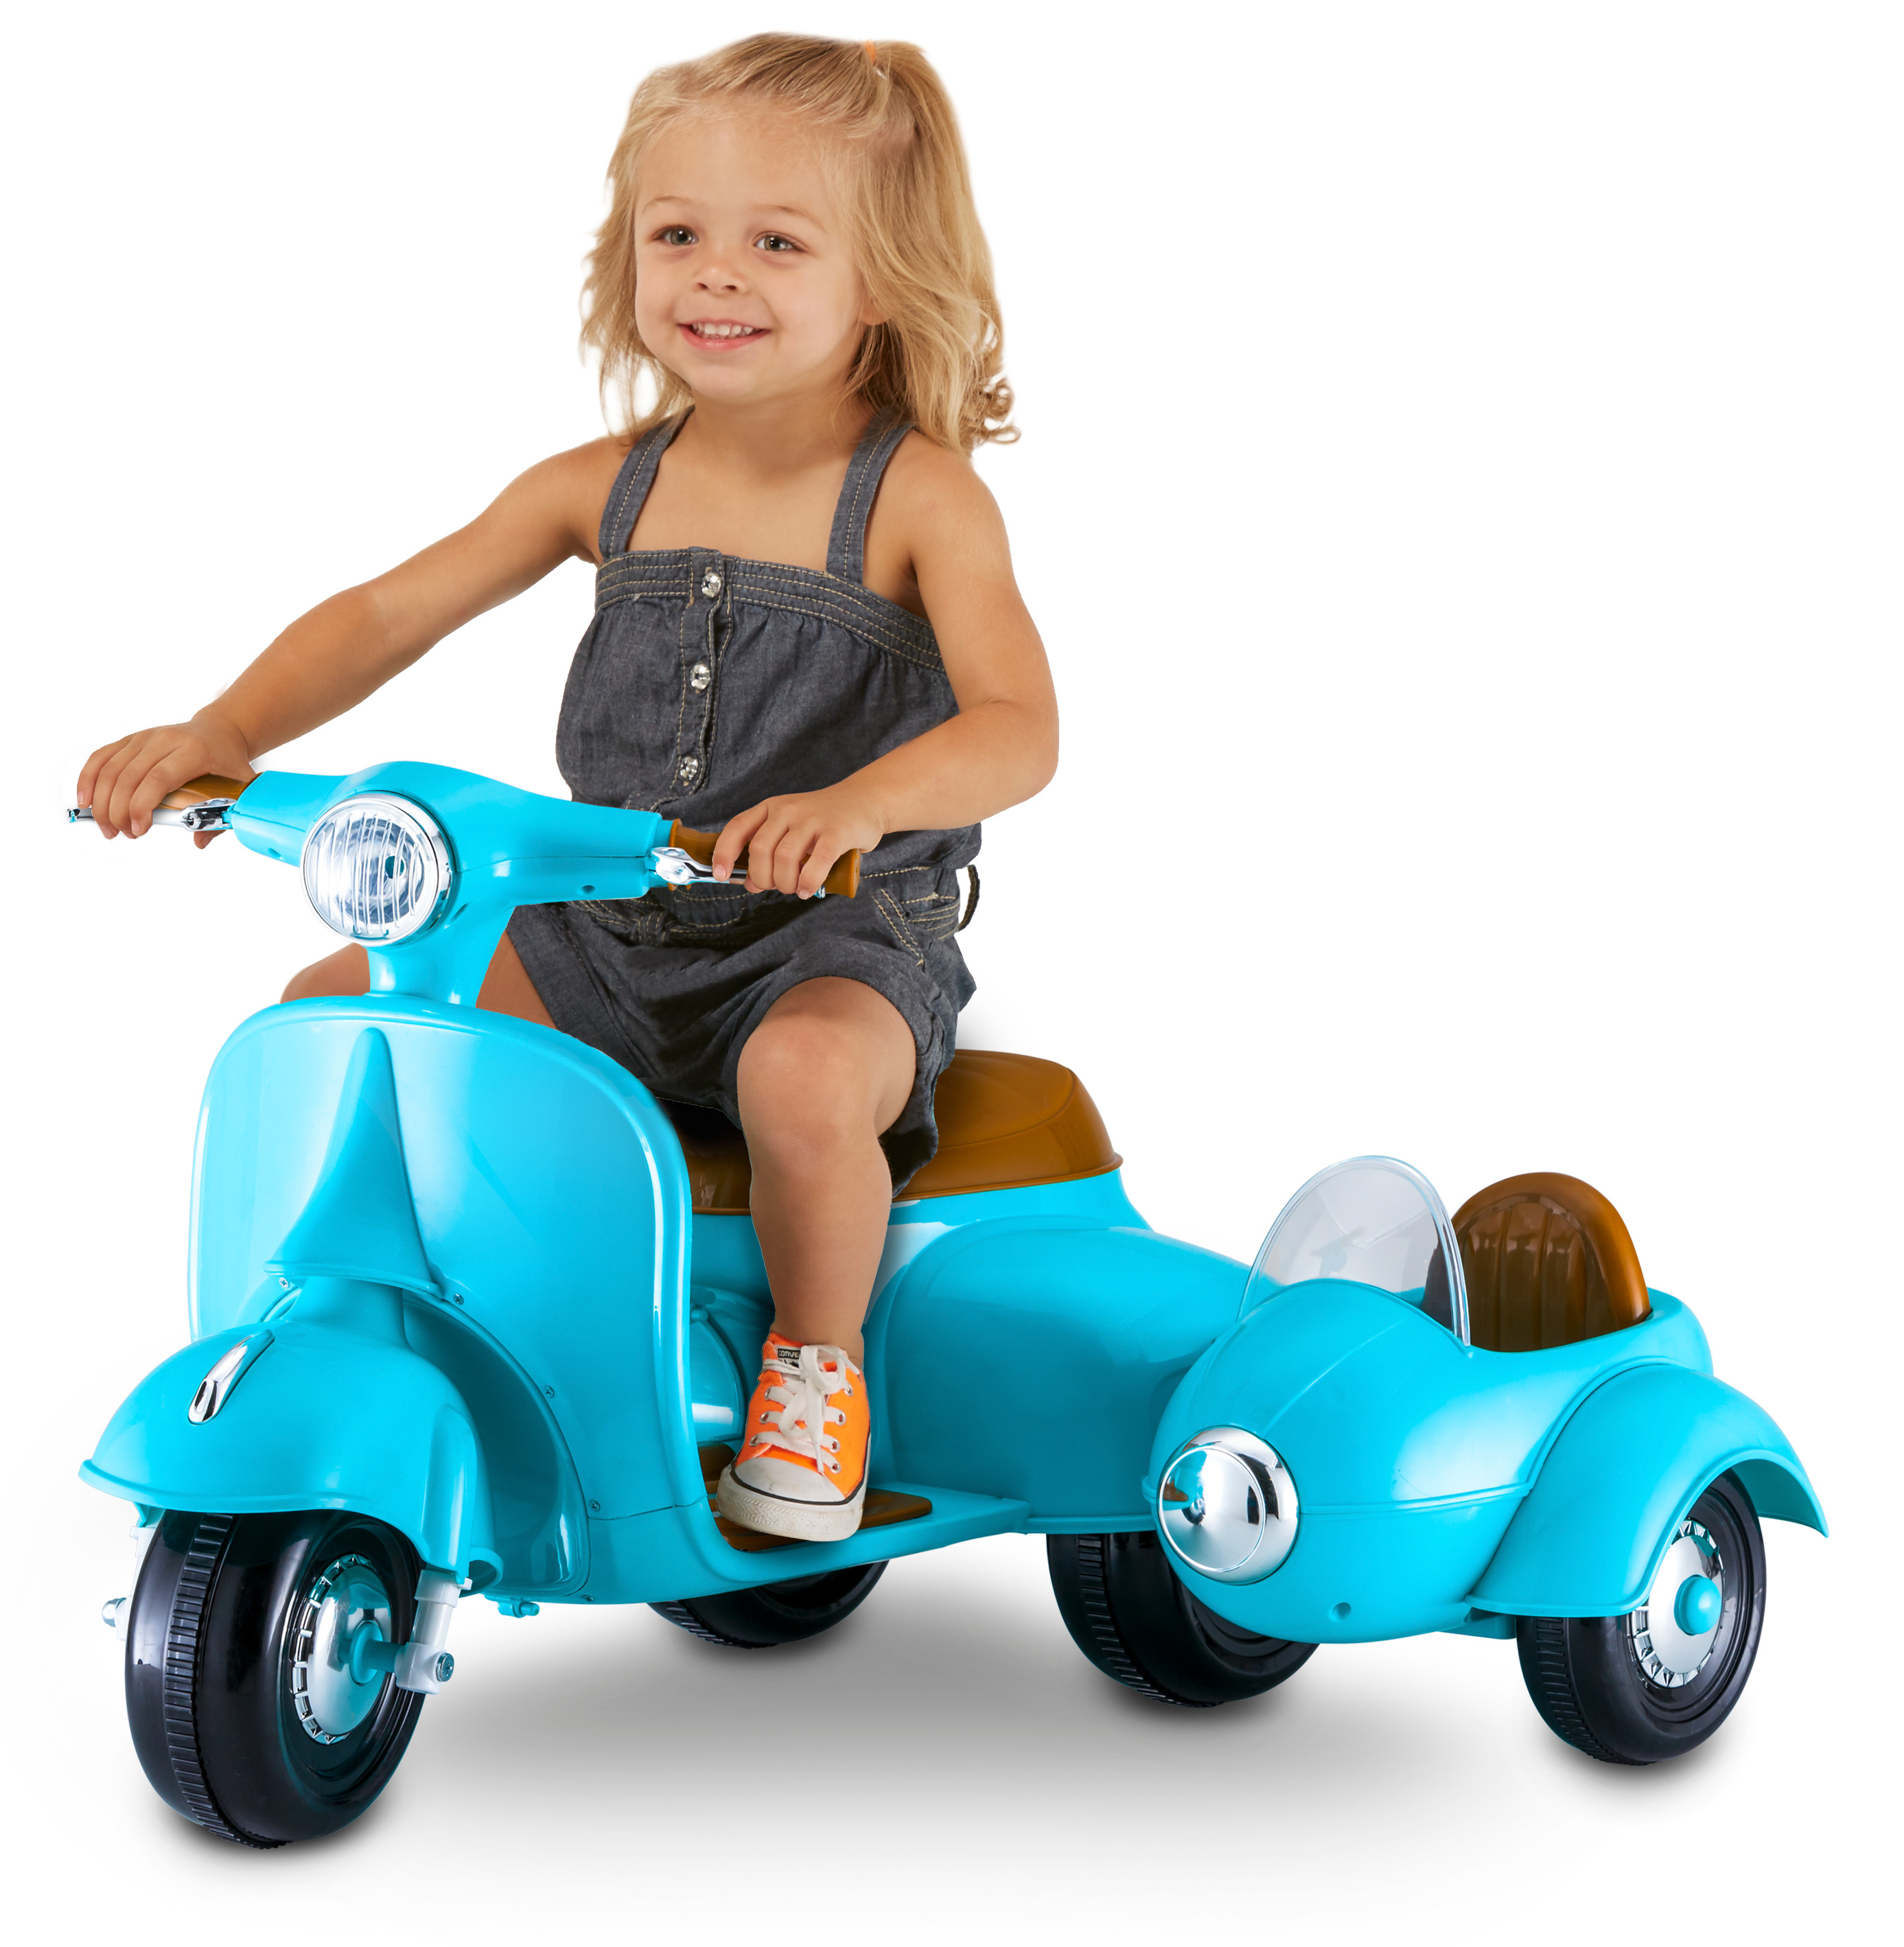 6-Volt Scooter with Sidecar by Kid Trax, Blue